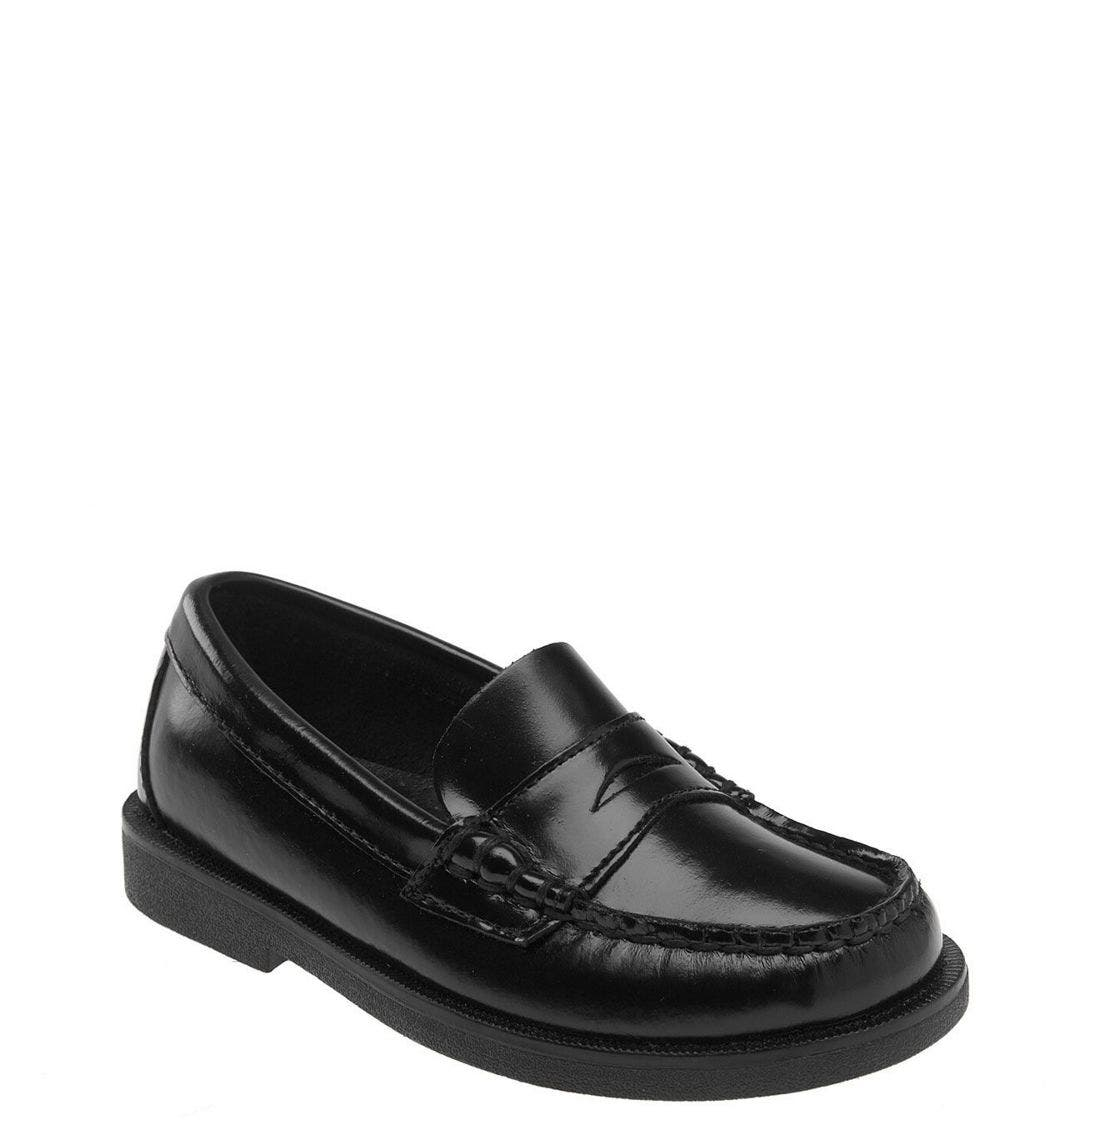 'Colton' Loafer,                             Main thumbnail 1, color,                             BLACK LEATHER